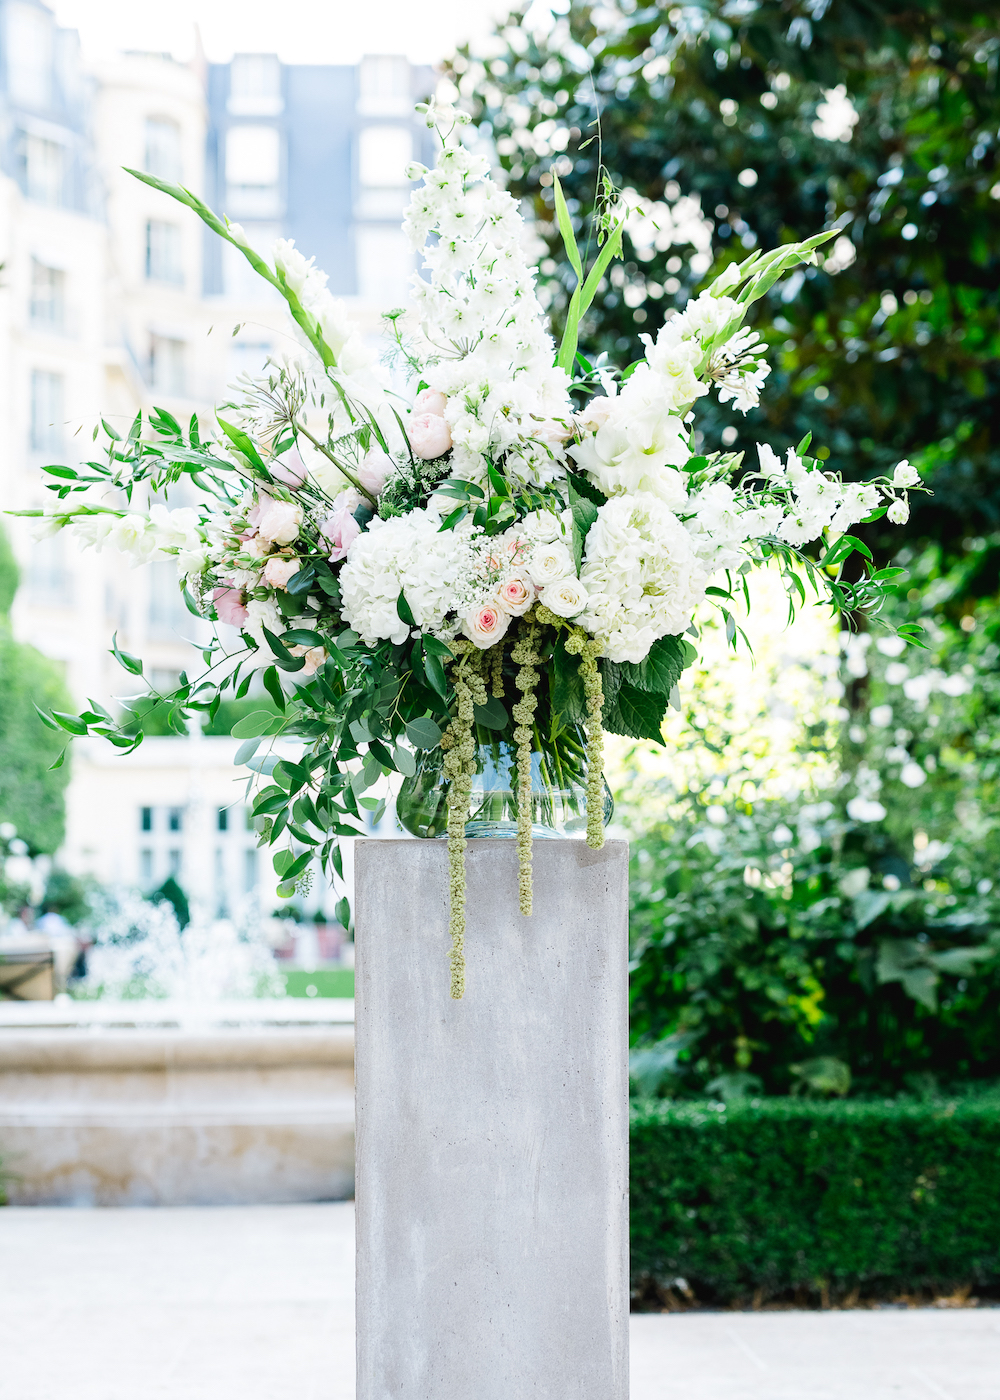 Paris wedding ceremony flowers